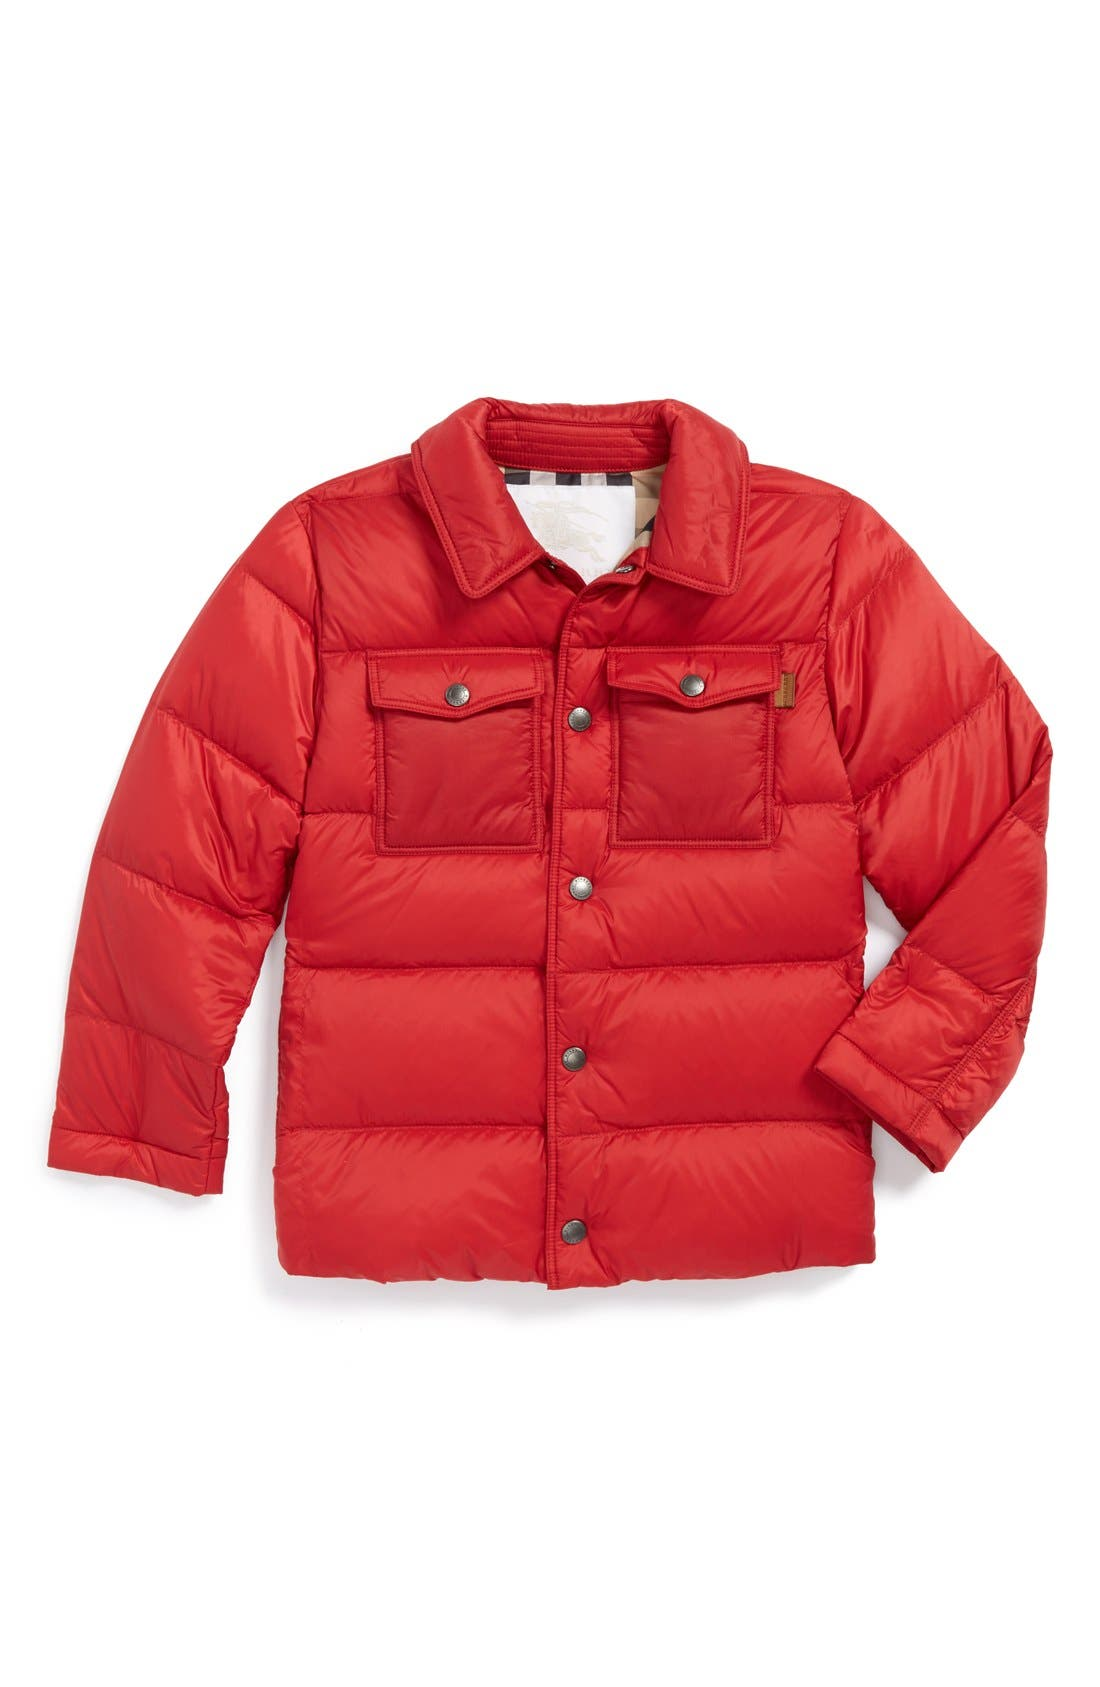 Alternate Image 1 Selected - Burberry Quilted Down Jacket (Little Boys & Big Boys)